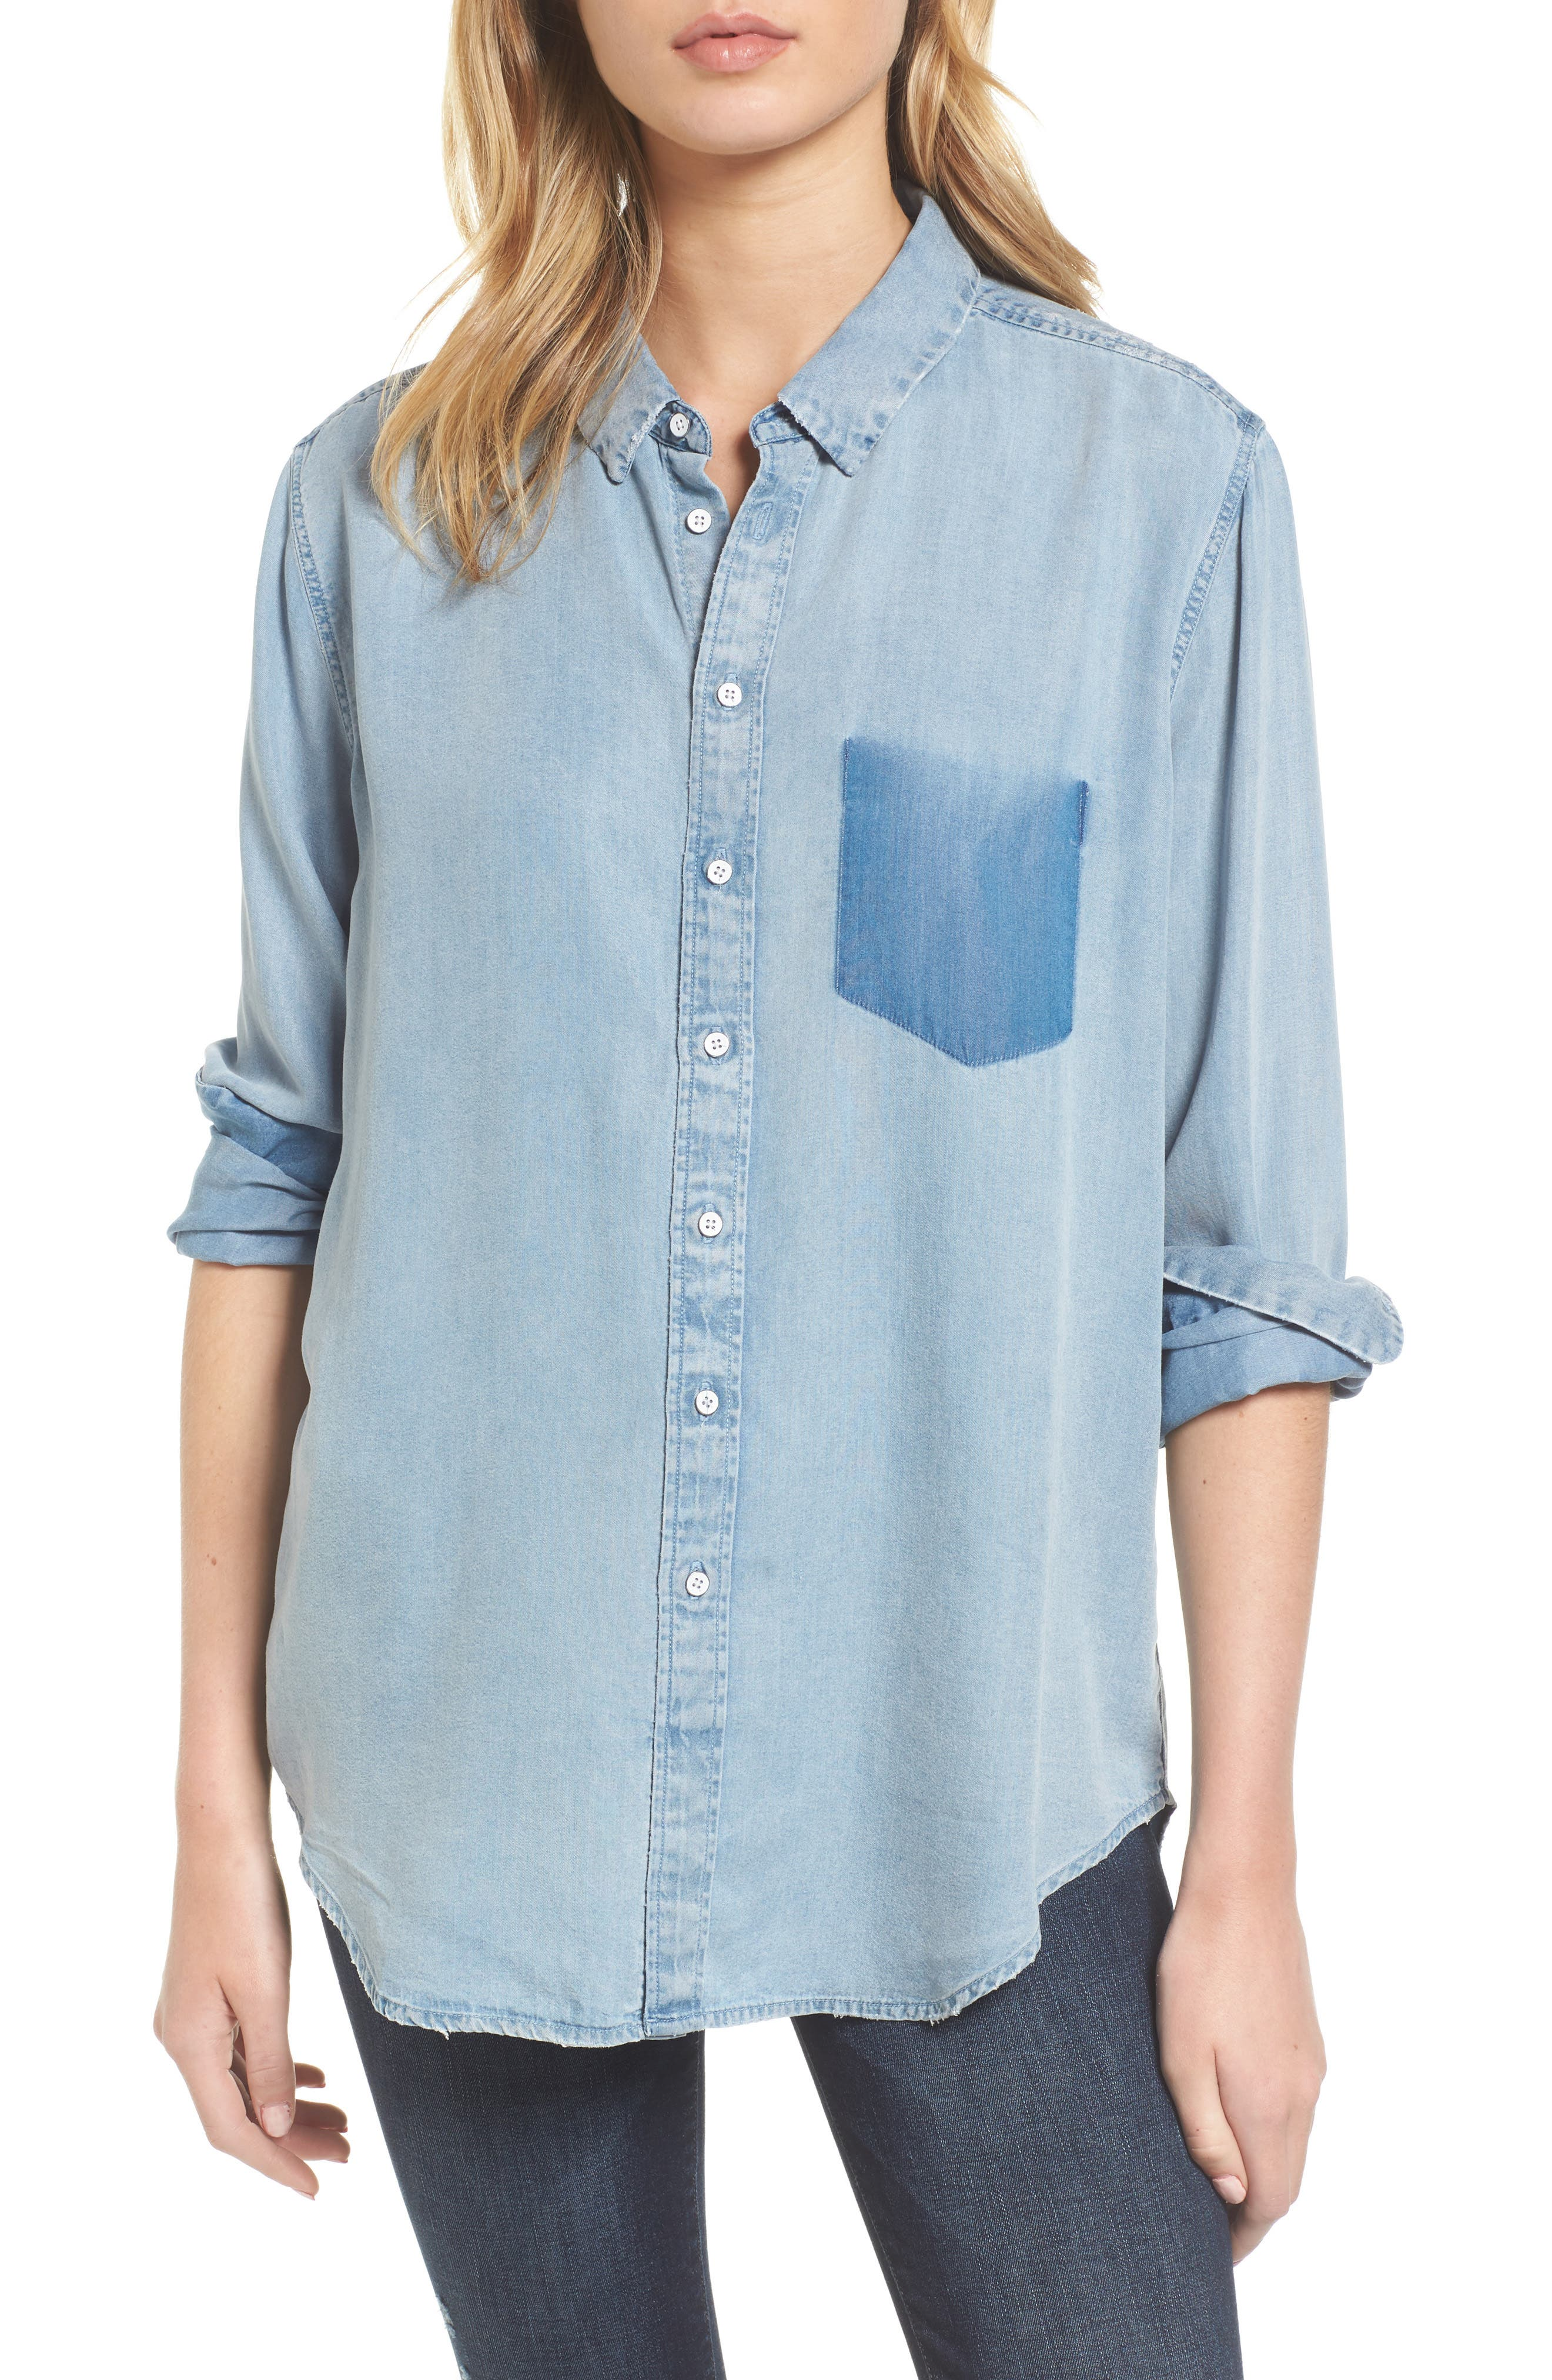 DL1961 x The Blue Shirt Shop Nassau & Manhattan Boyfriend Shirt